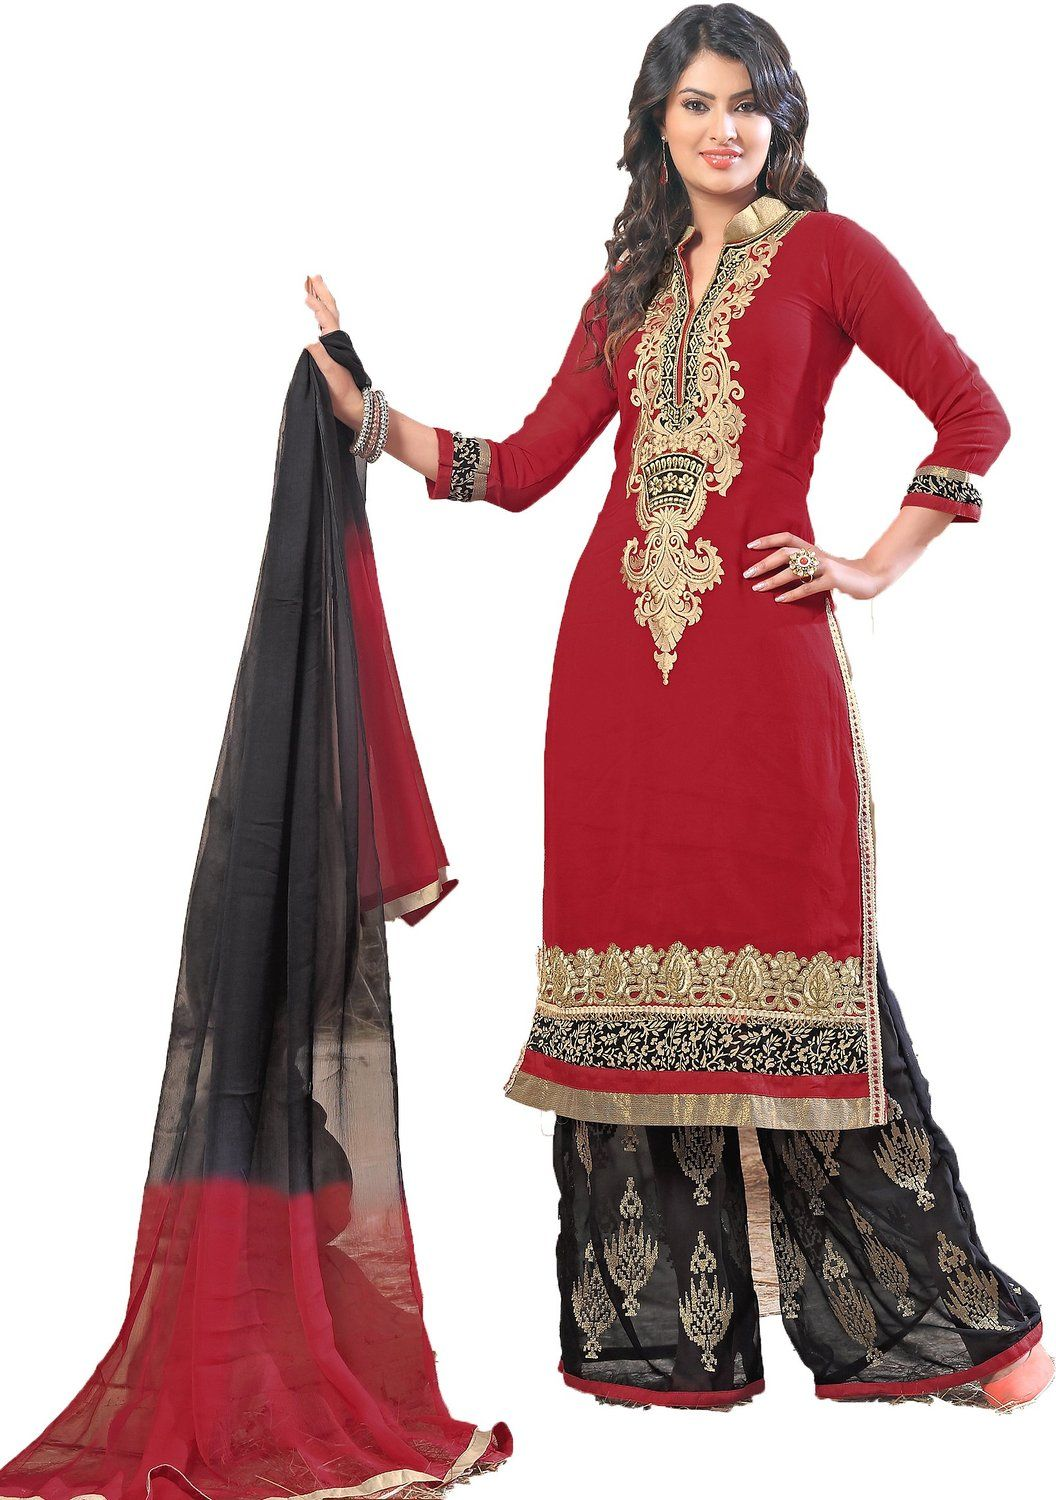 c382cb462a chakudee by red georgette drees material: Amazon.in: Clothing &  Accessories,Designer